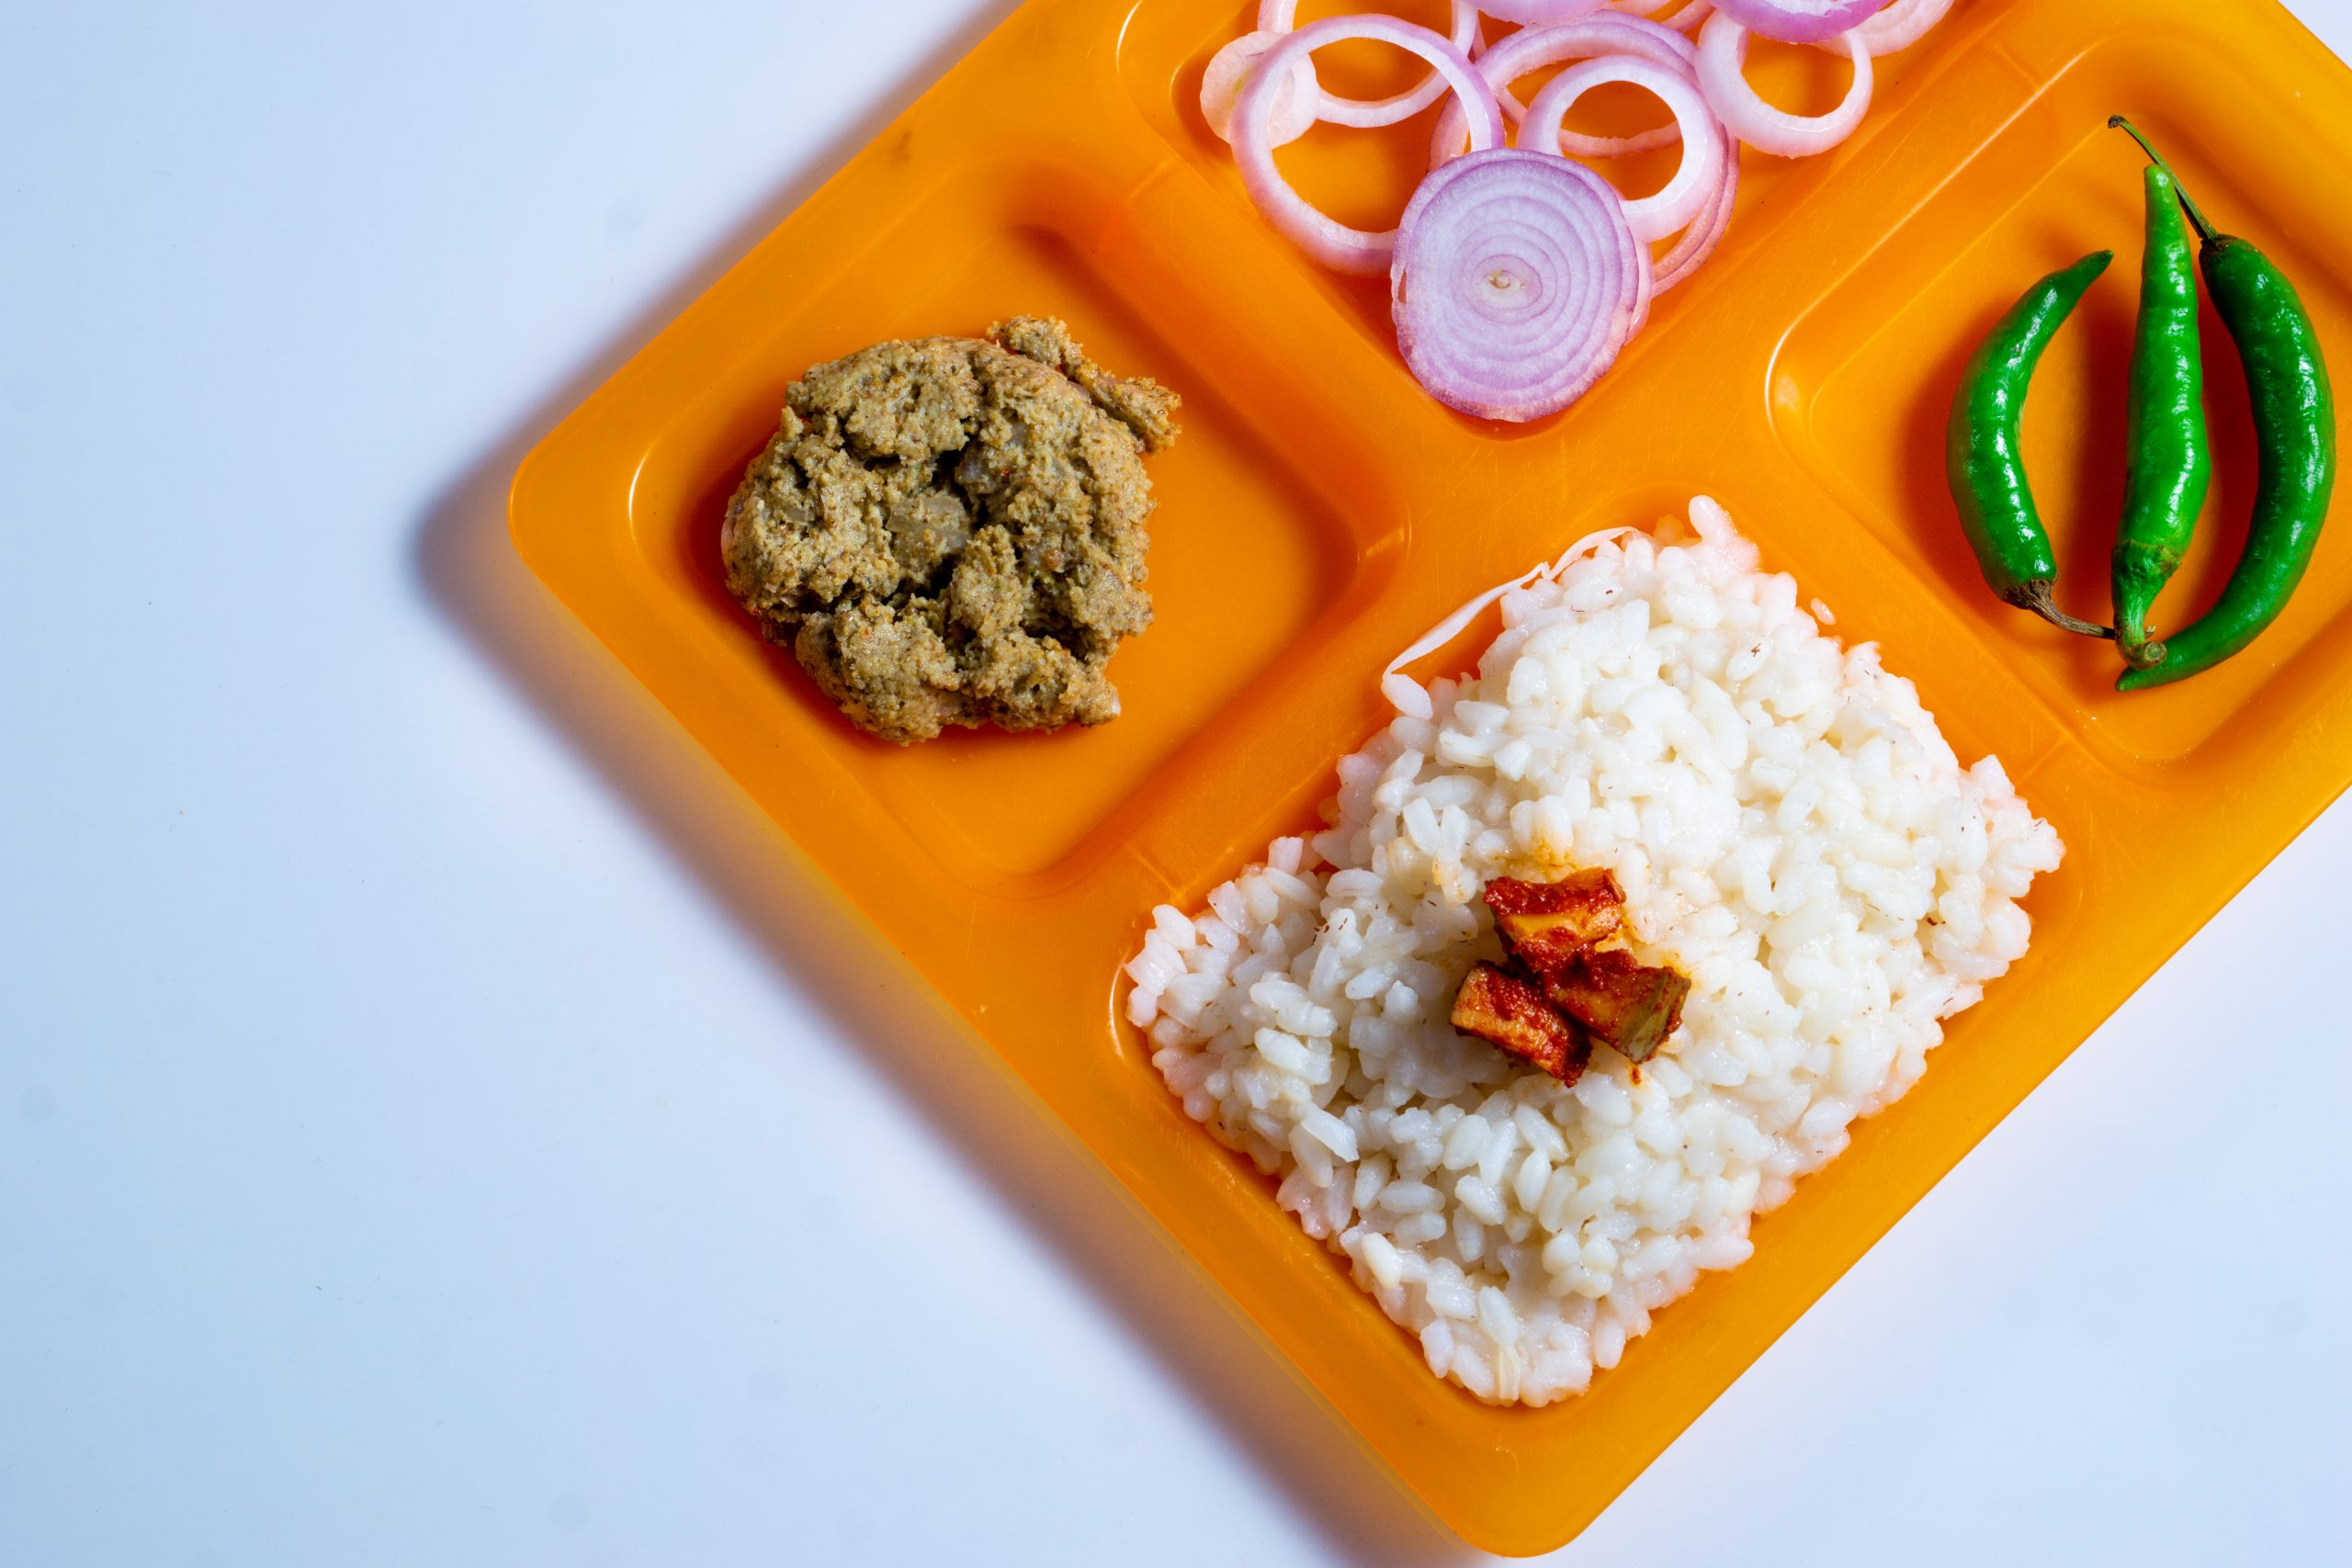 A Meal in a Plate on Focus